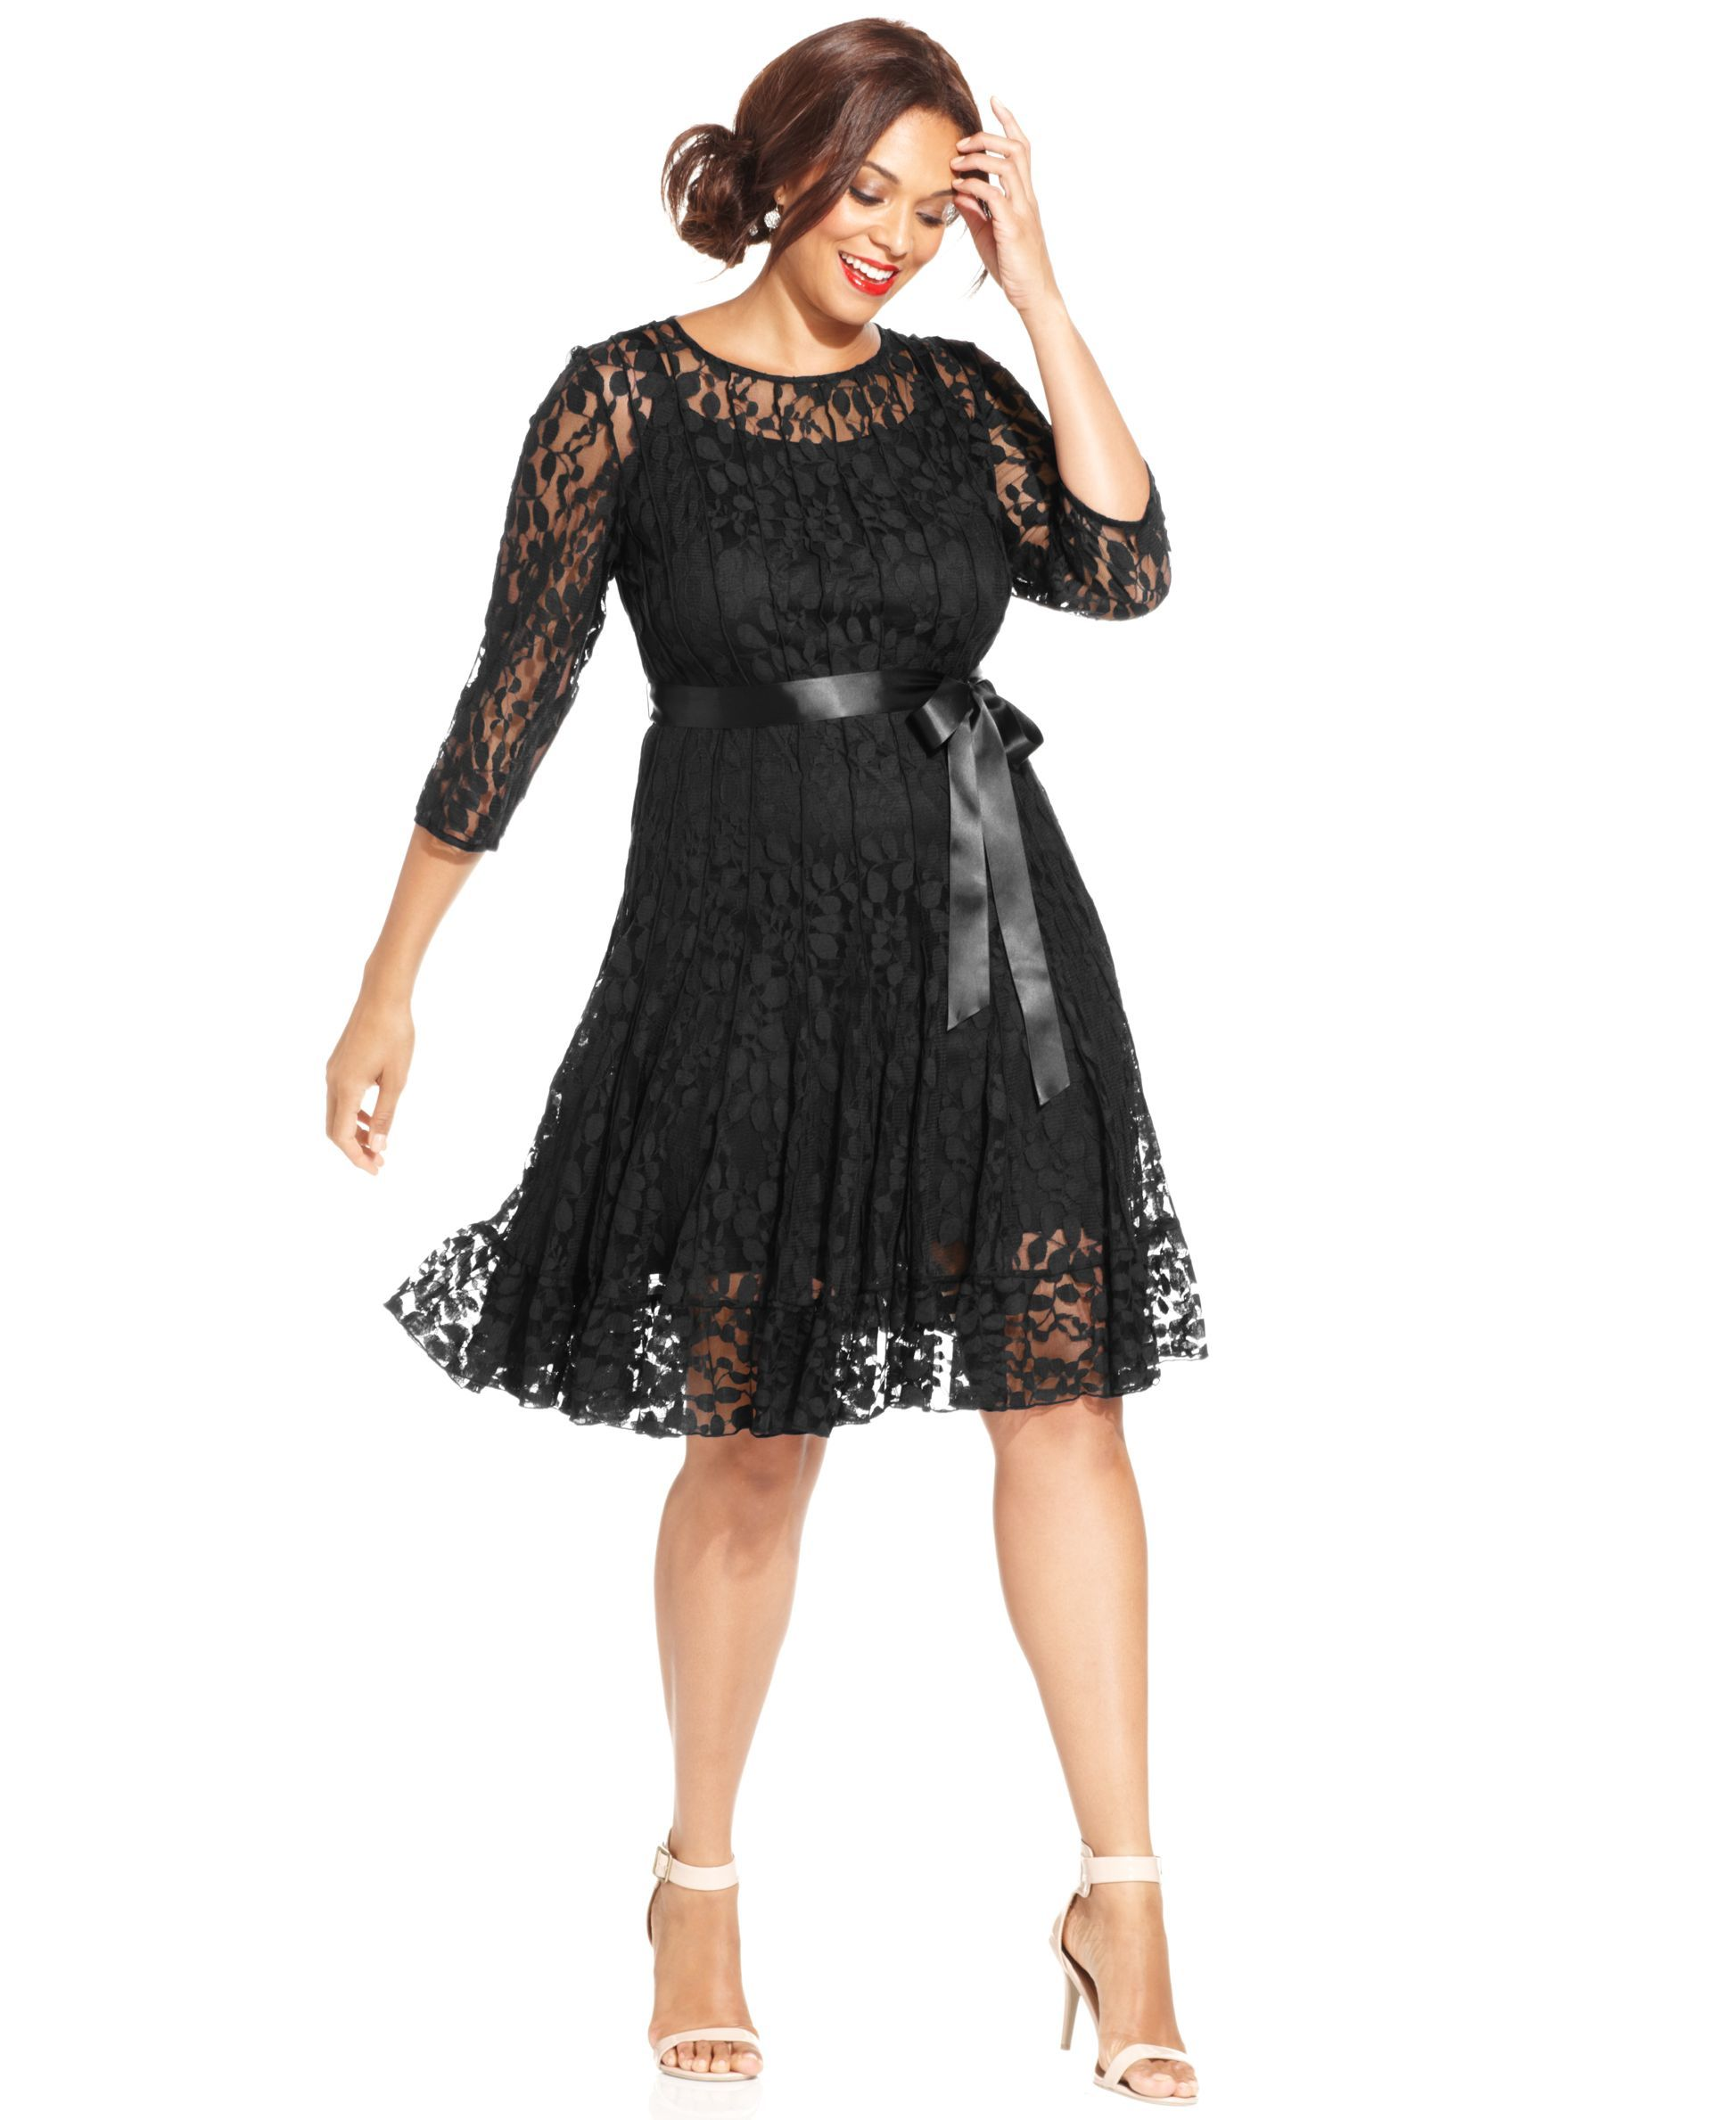 If it only came in off white or brown httpwww1cysshop msk plus size illusion floral lace dress shop all wedding dresses women macys ombrellifo Images